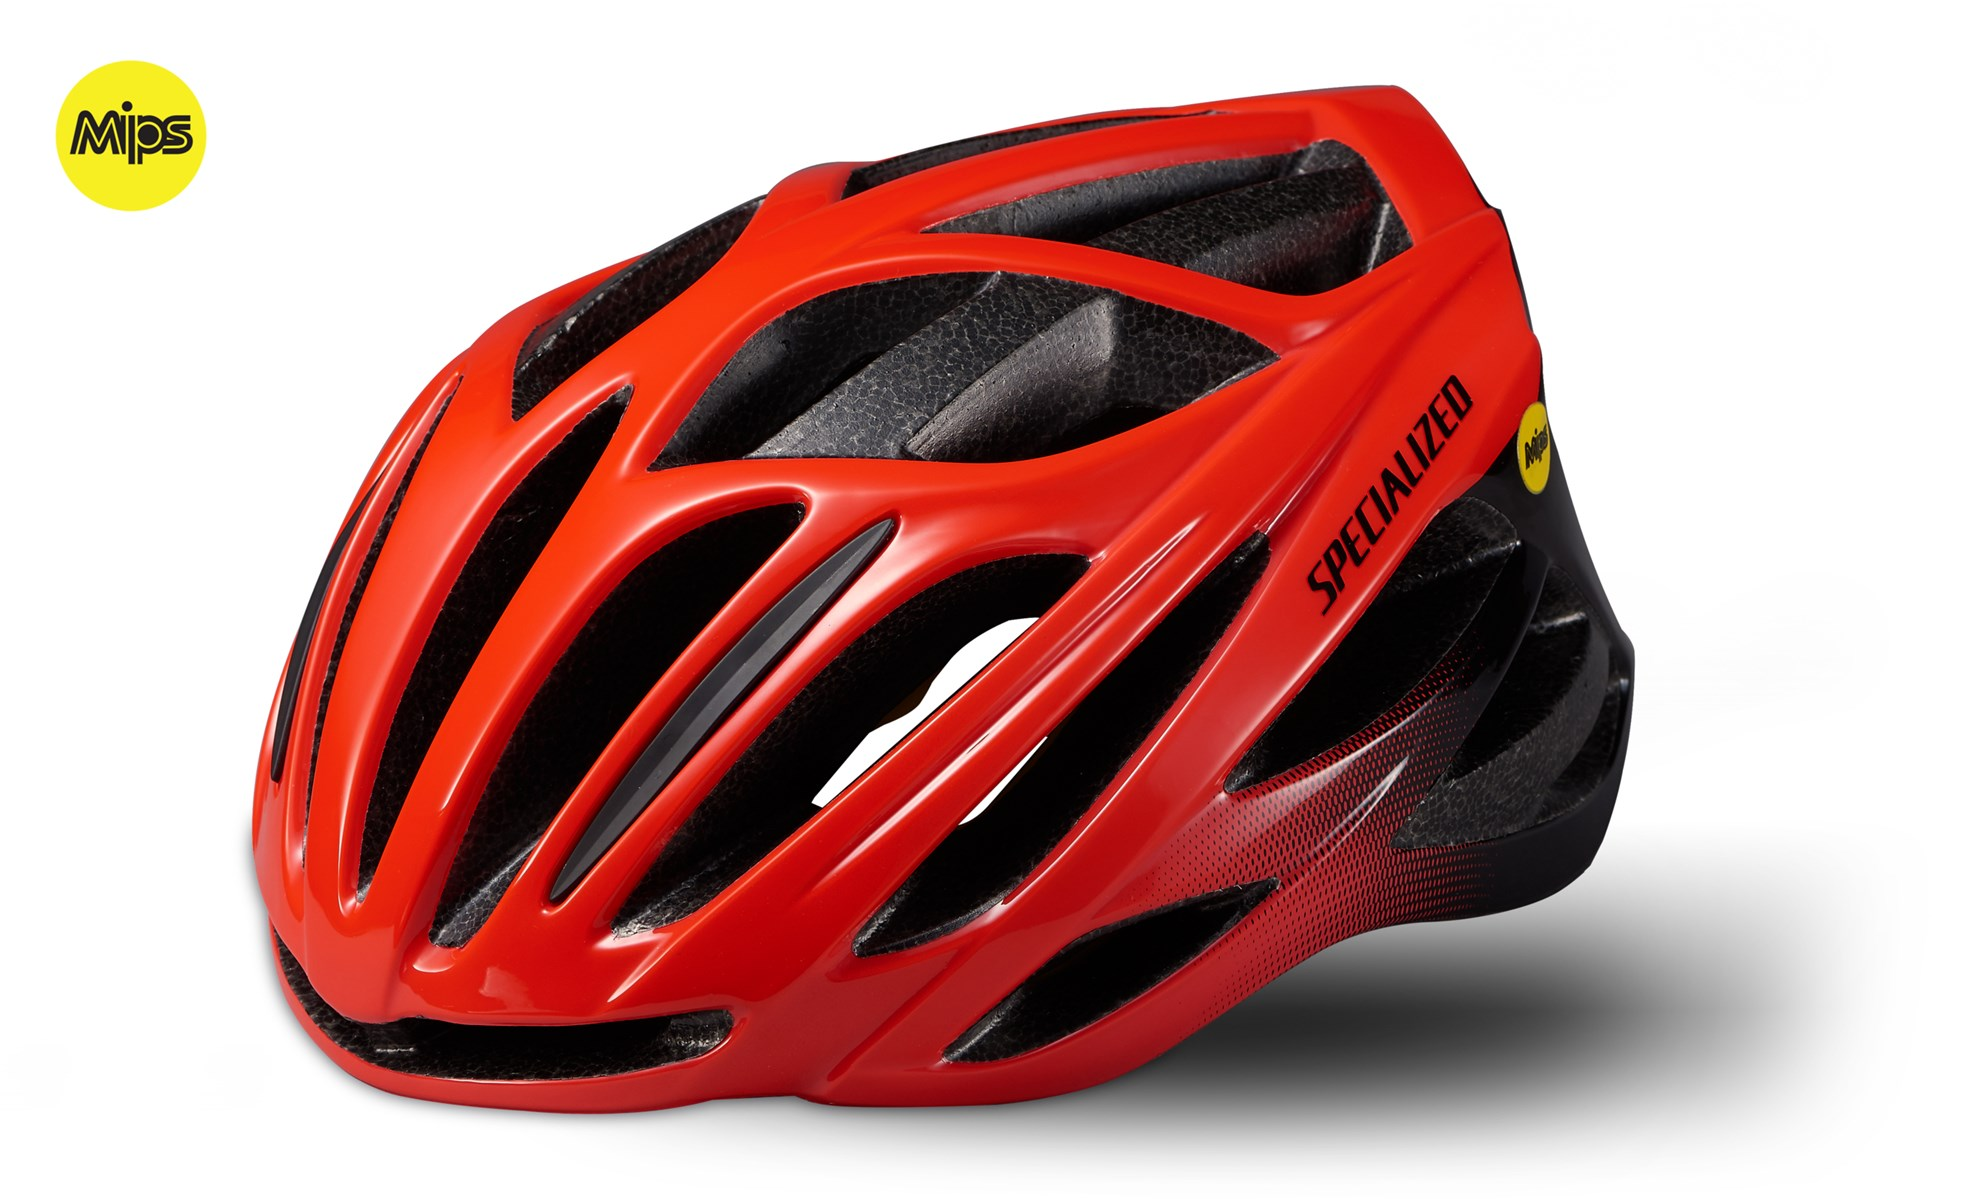 10c04d9fd52 2019 Specialized Echelon II MIPS Cycling Helmet in Red. 0 (Be the first to  add a review!)